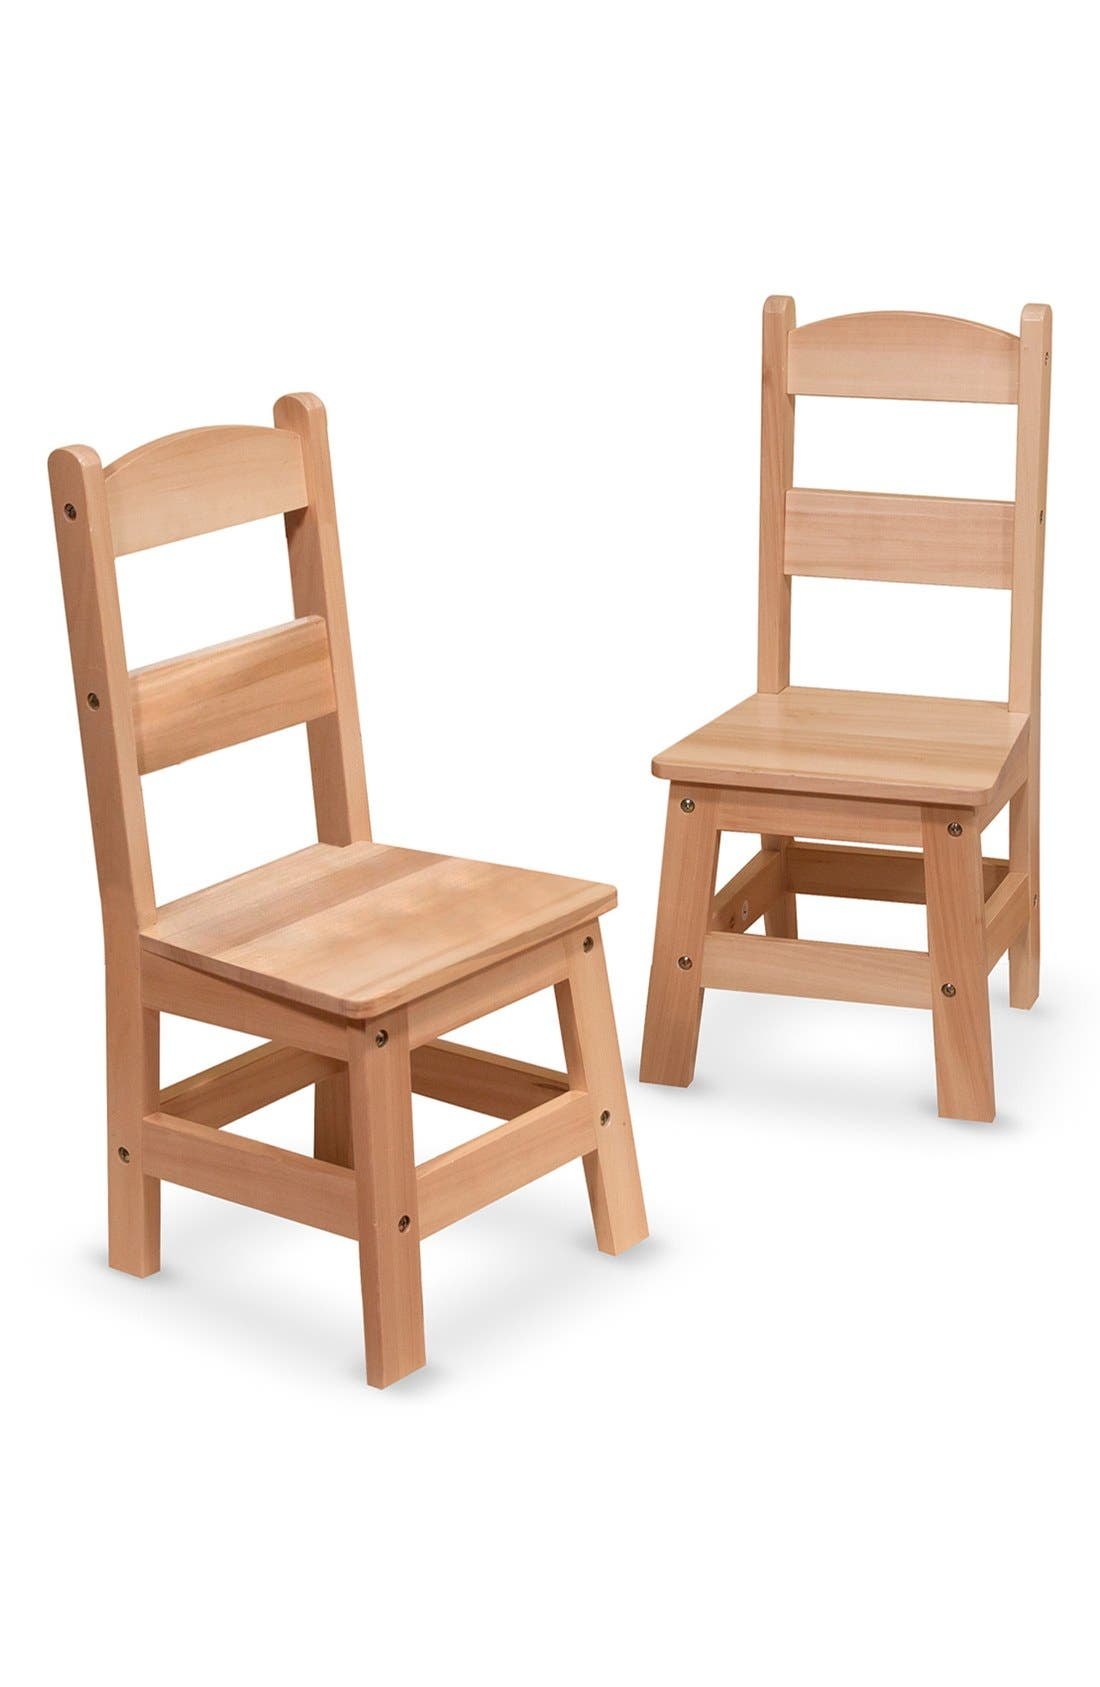 Alternate Image 1 Selected - Melissa & Doug Wooden Chairs (Set of 2)